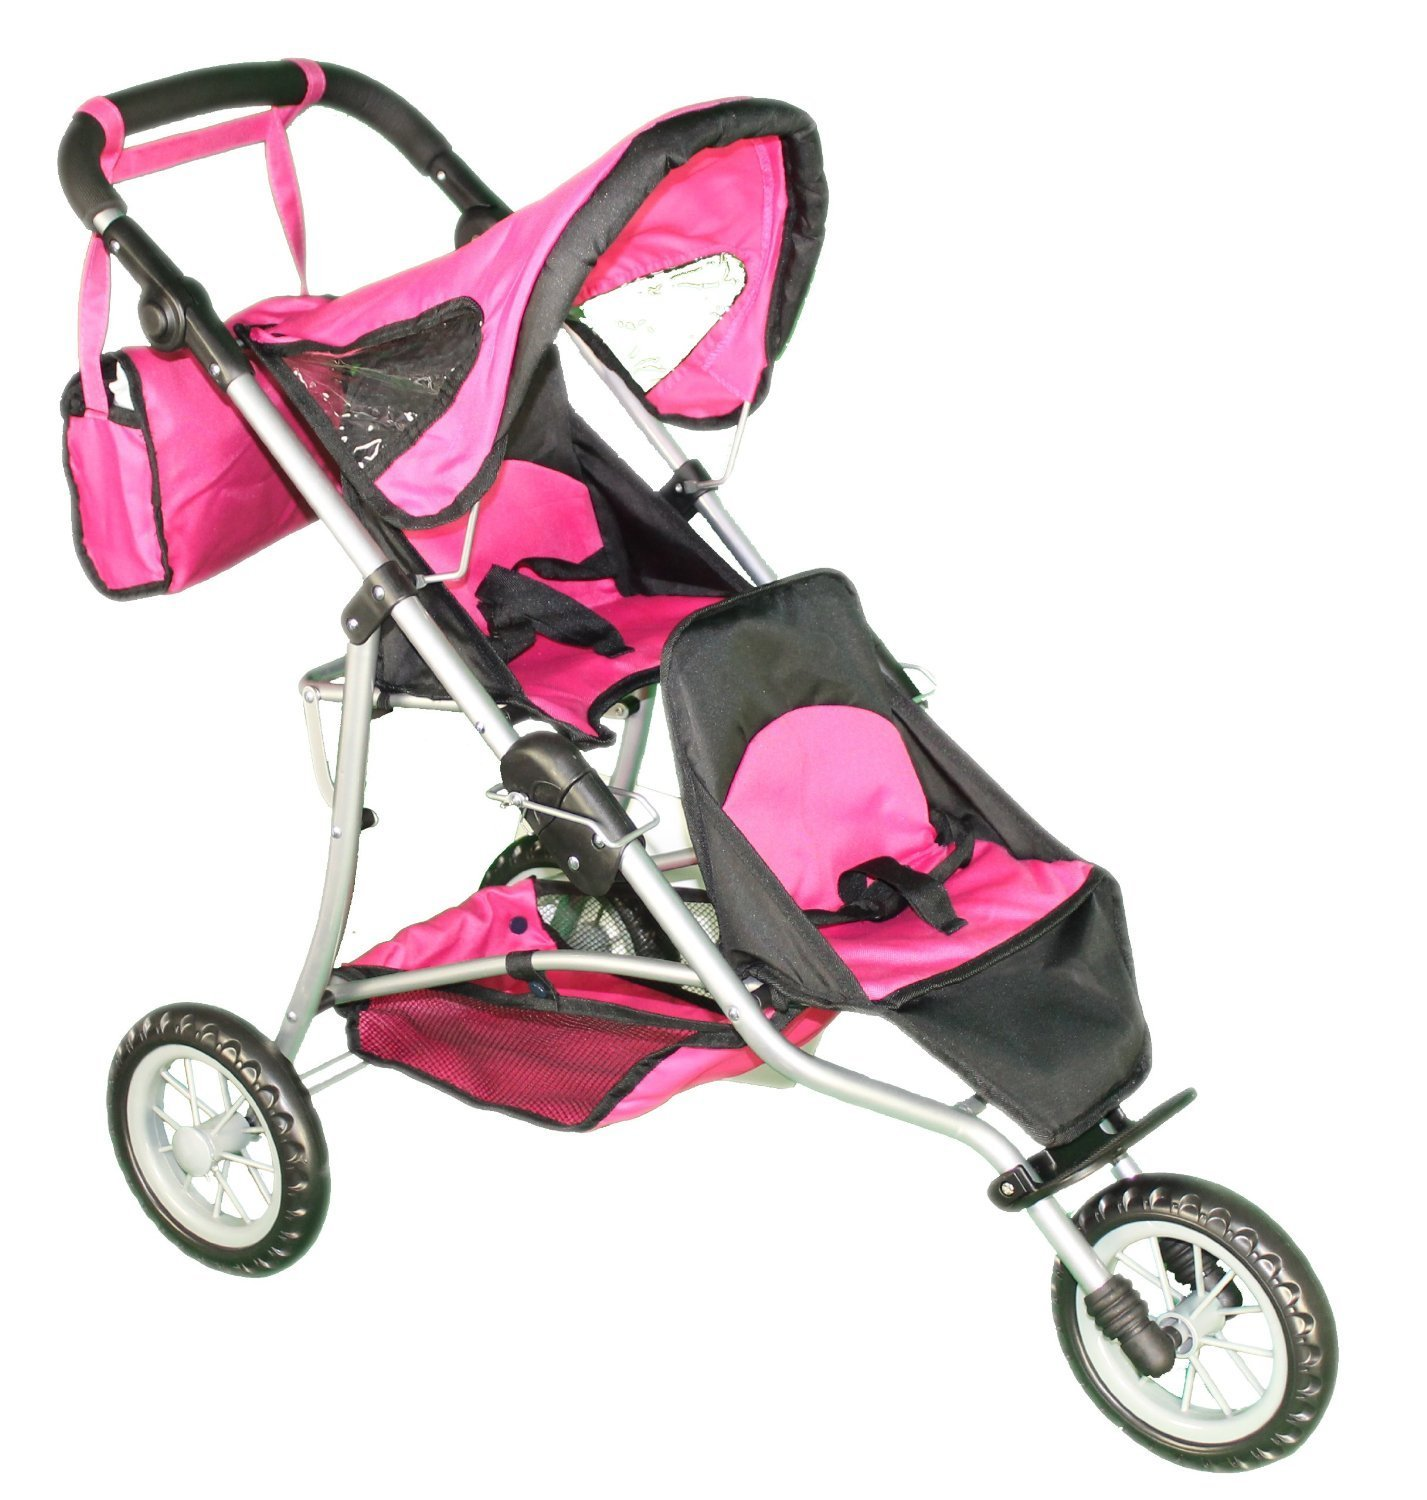 Amazon Mommy & Me Doll Twin Stroller and Carriage Bag 9383 Toys & Games